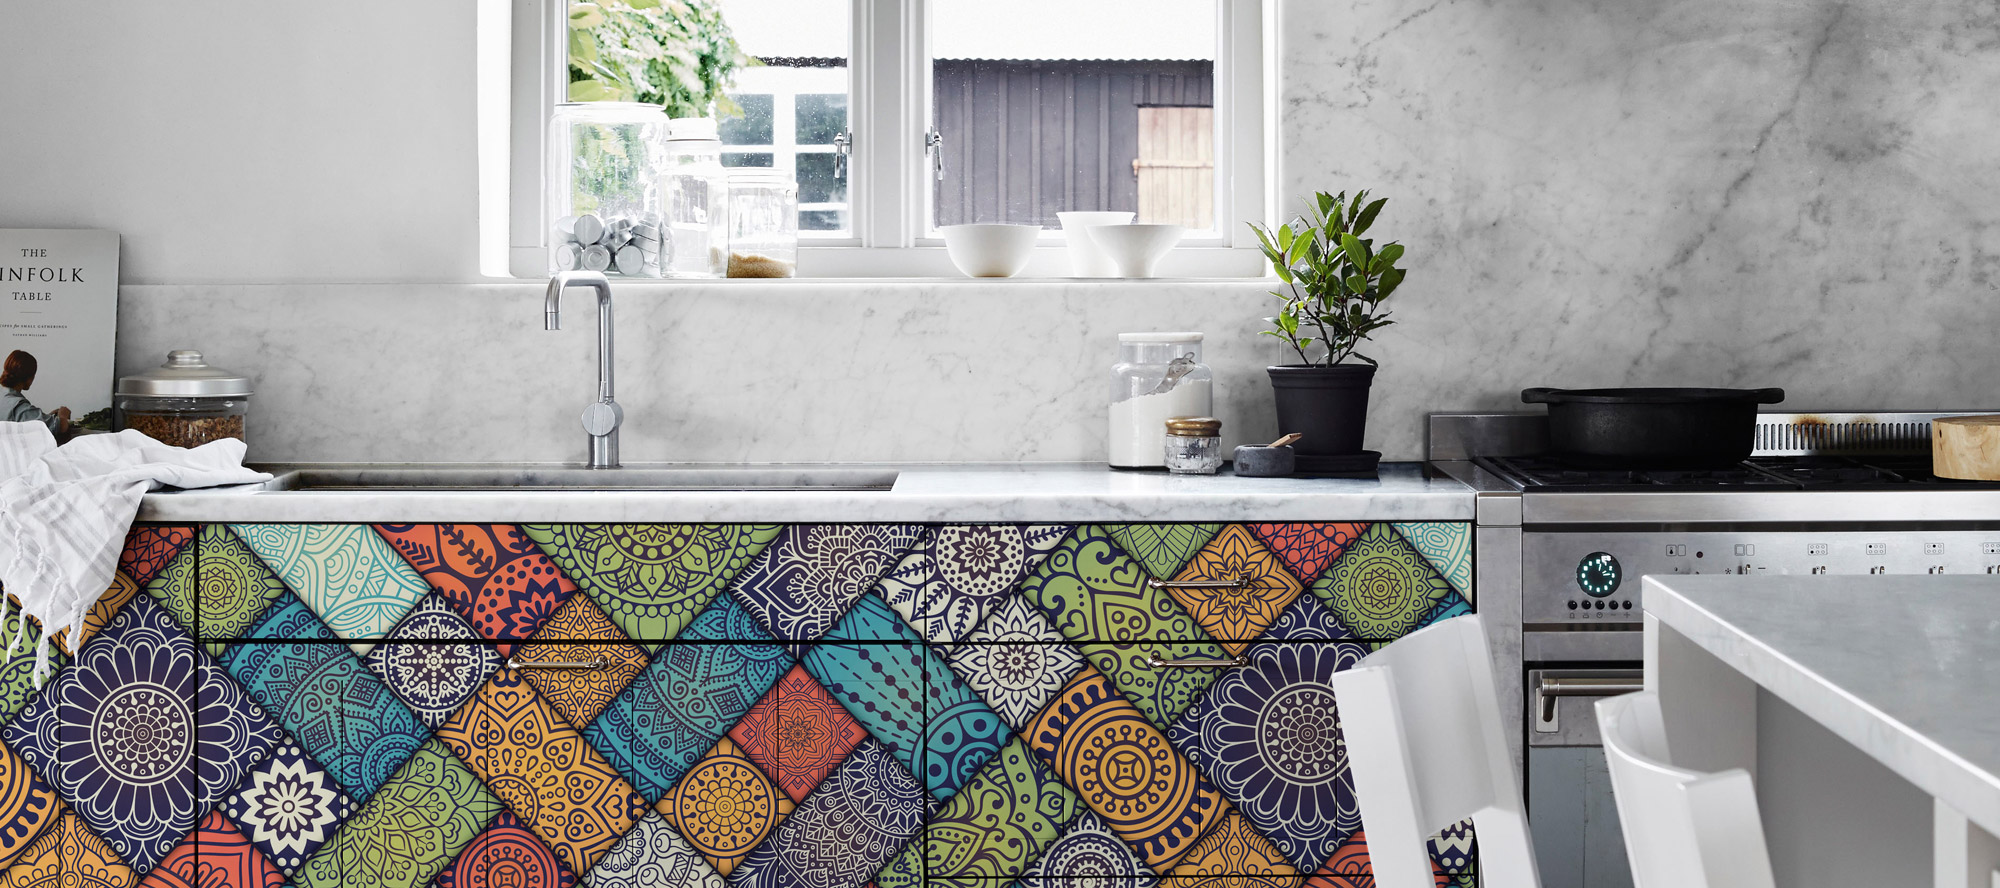 D'infinity, Colore Spektrum Digital Laminates For Kitchen-Sundek International